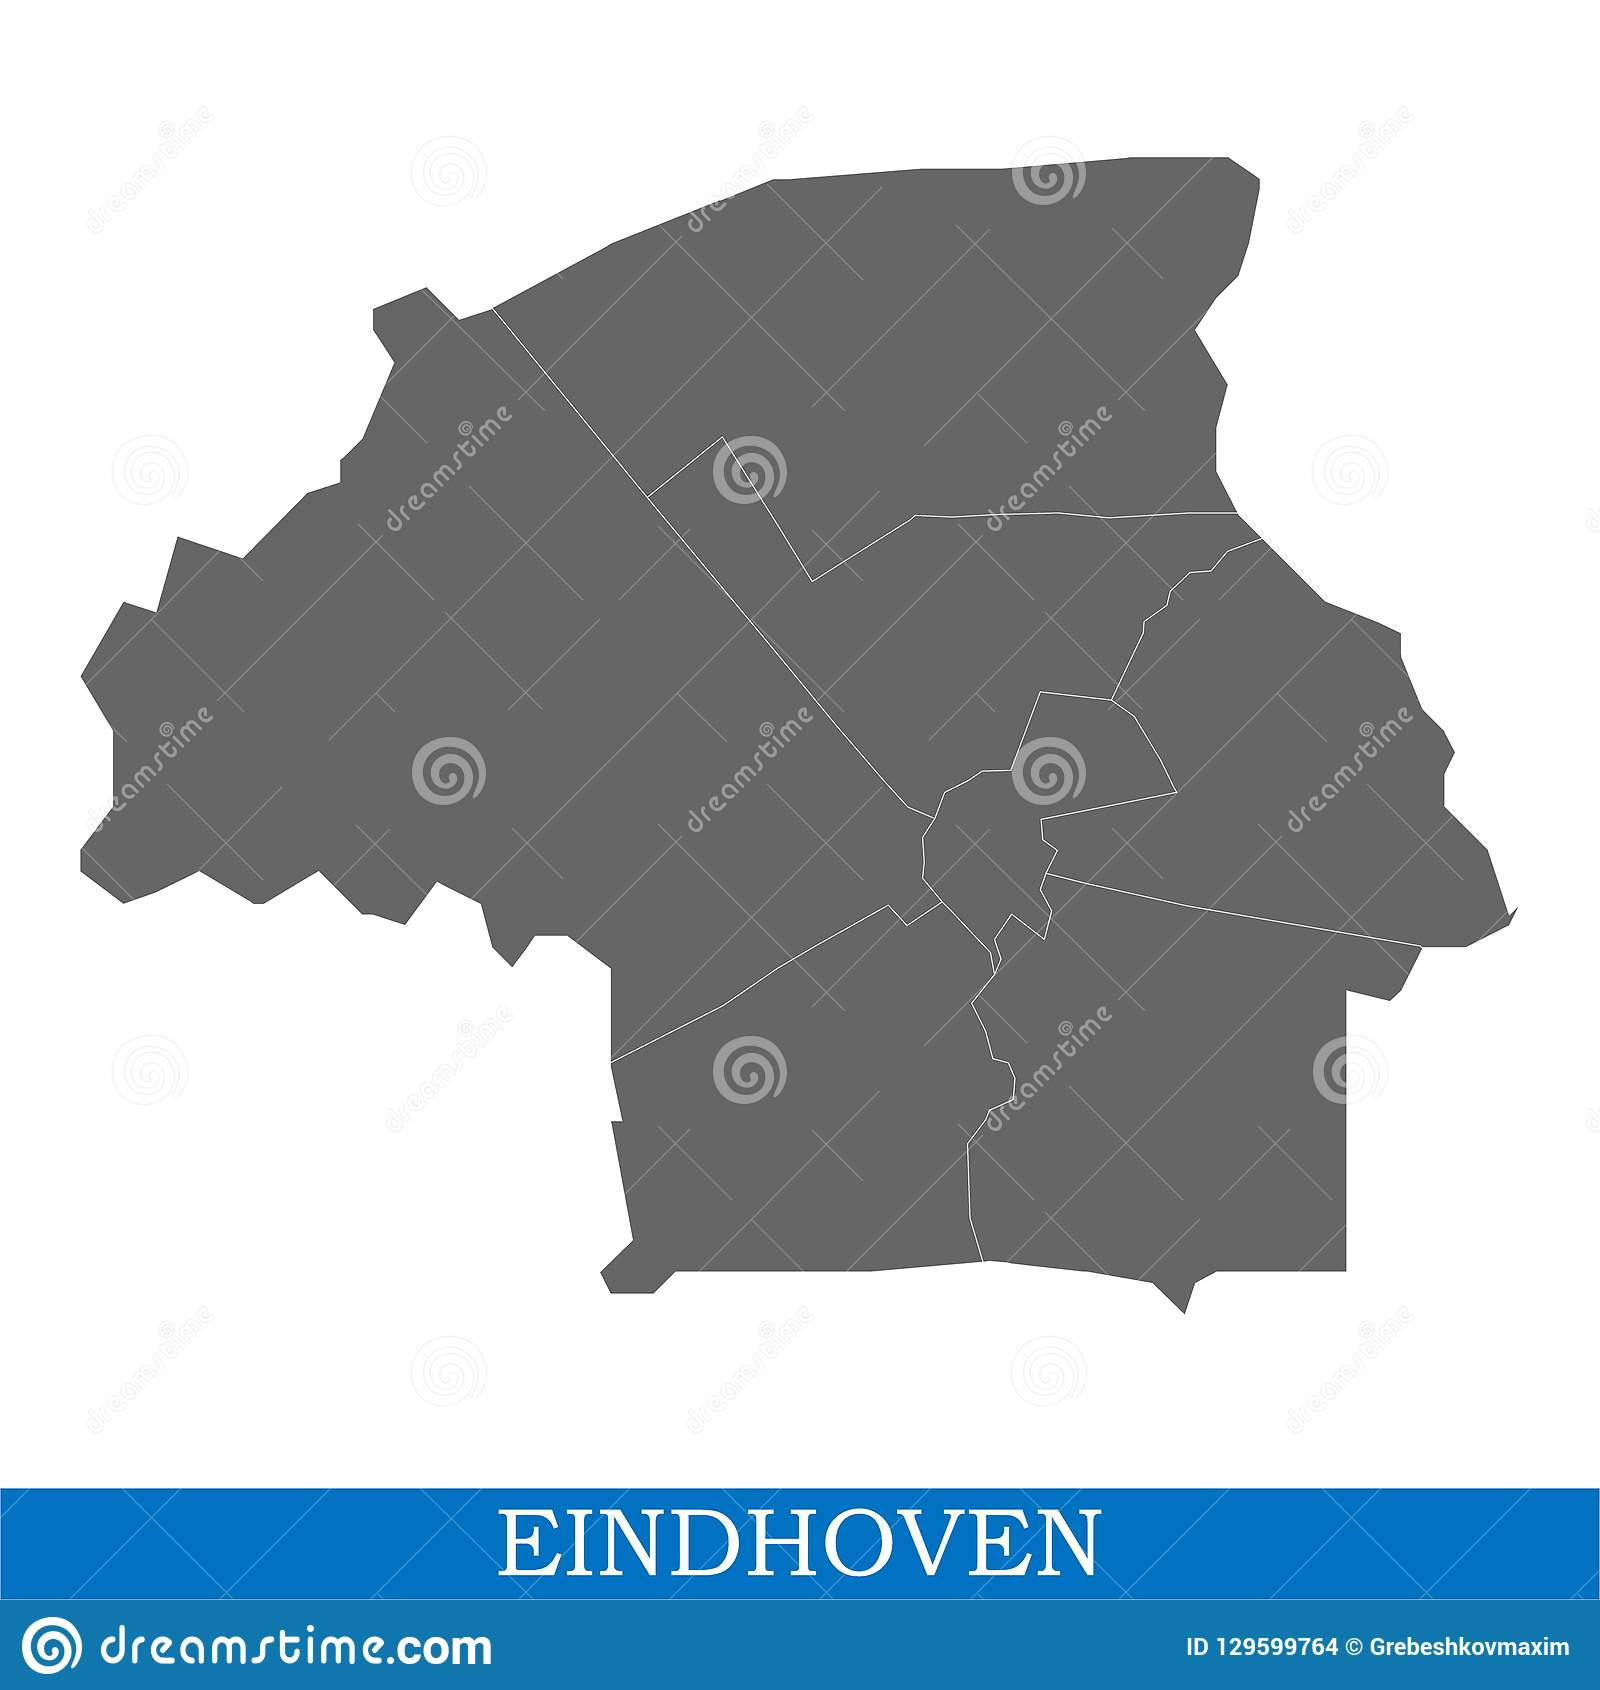 Map Is A City Of Netherlands Stock Illustration - Illustration of ...